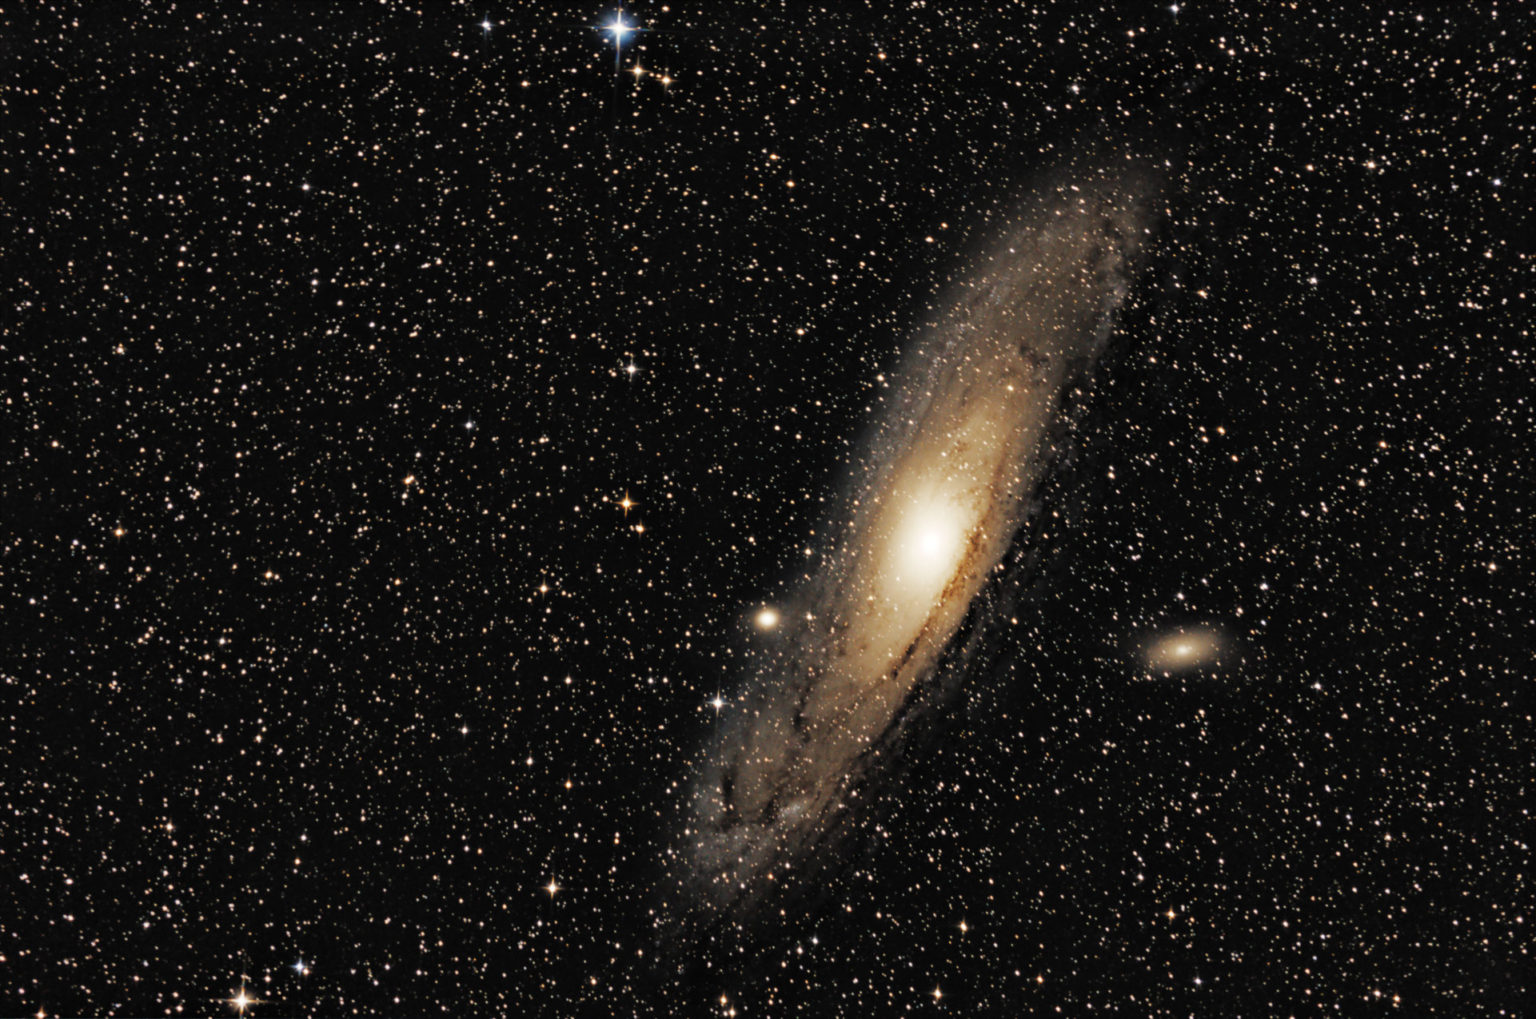 My first real photo of Andromeda